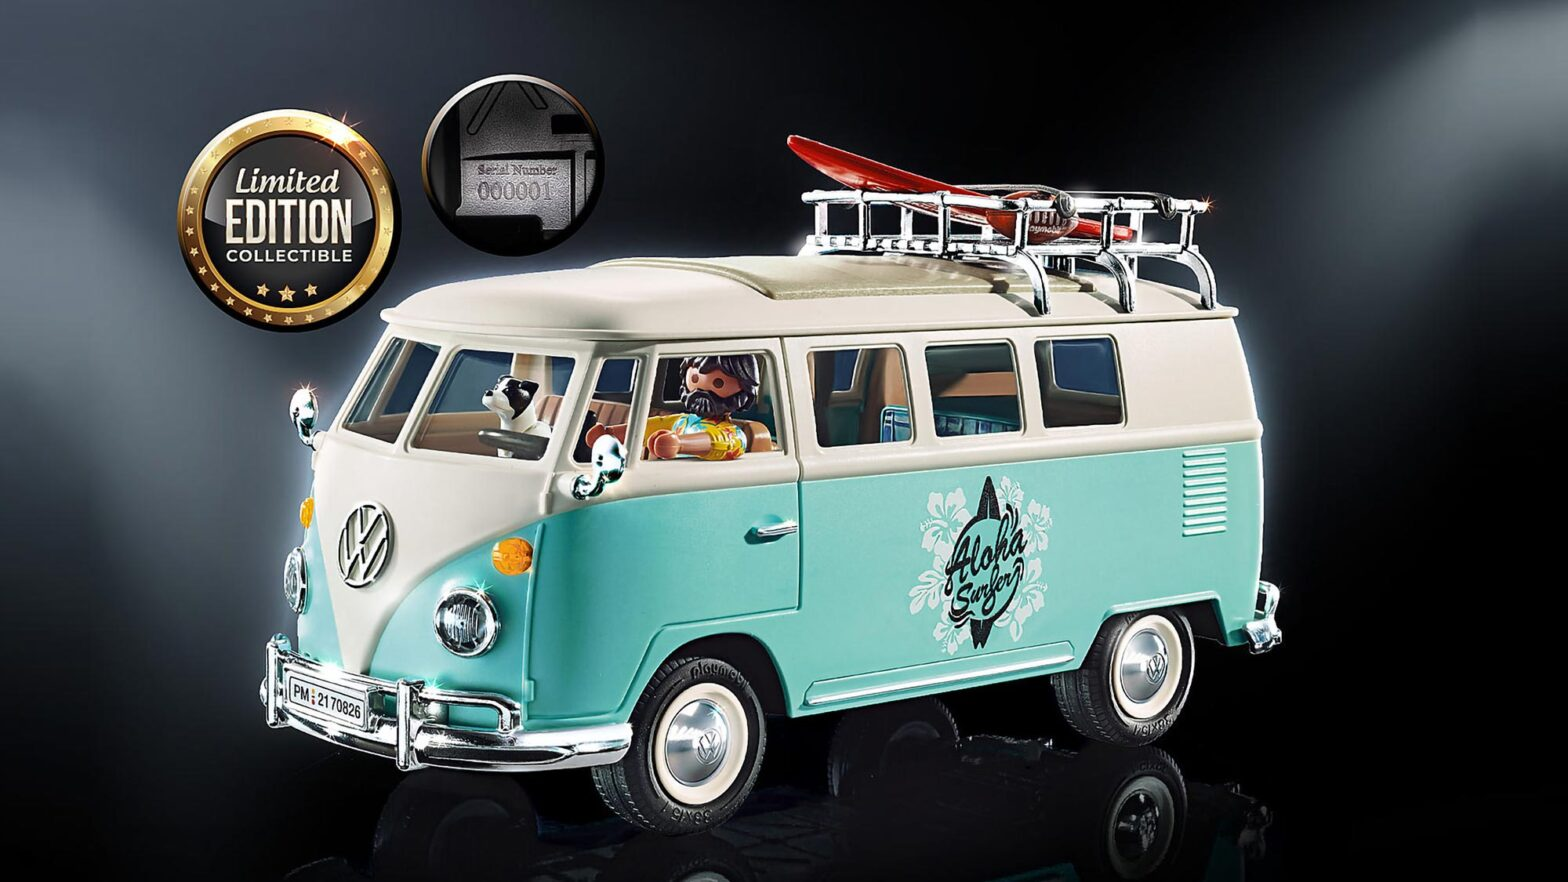 Playmobil Special Edition VW Bus and Beetle